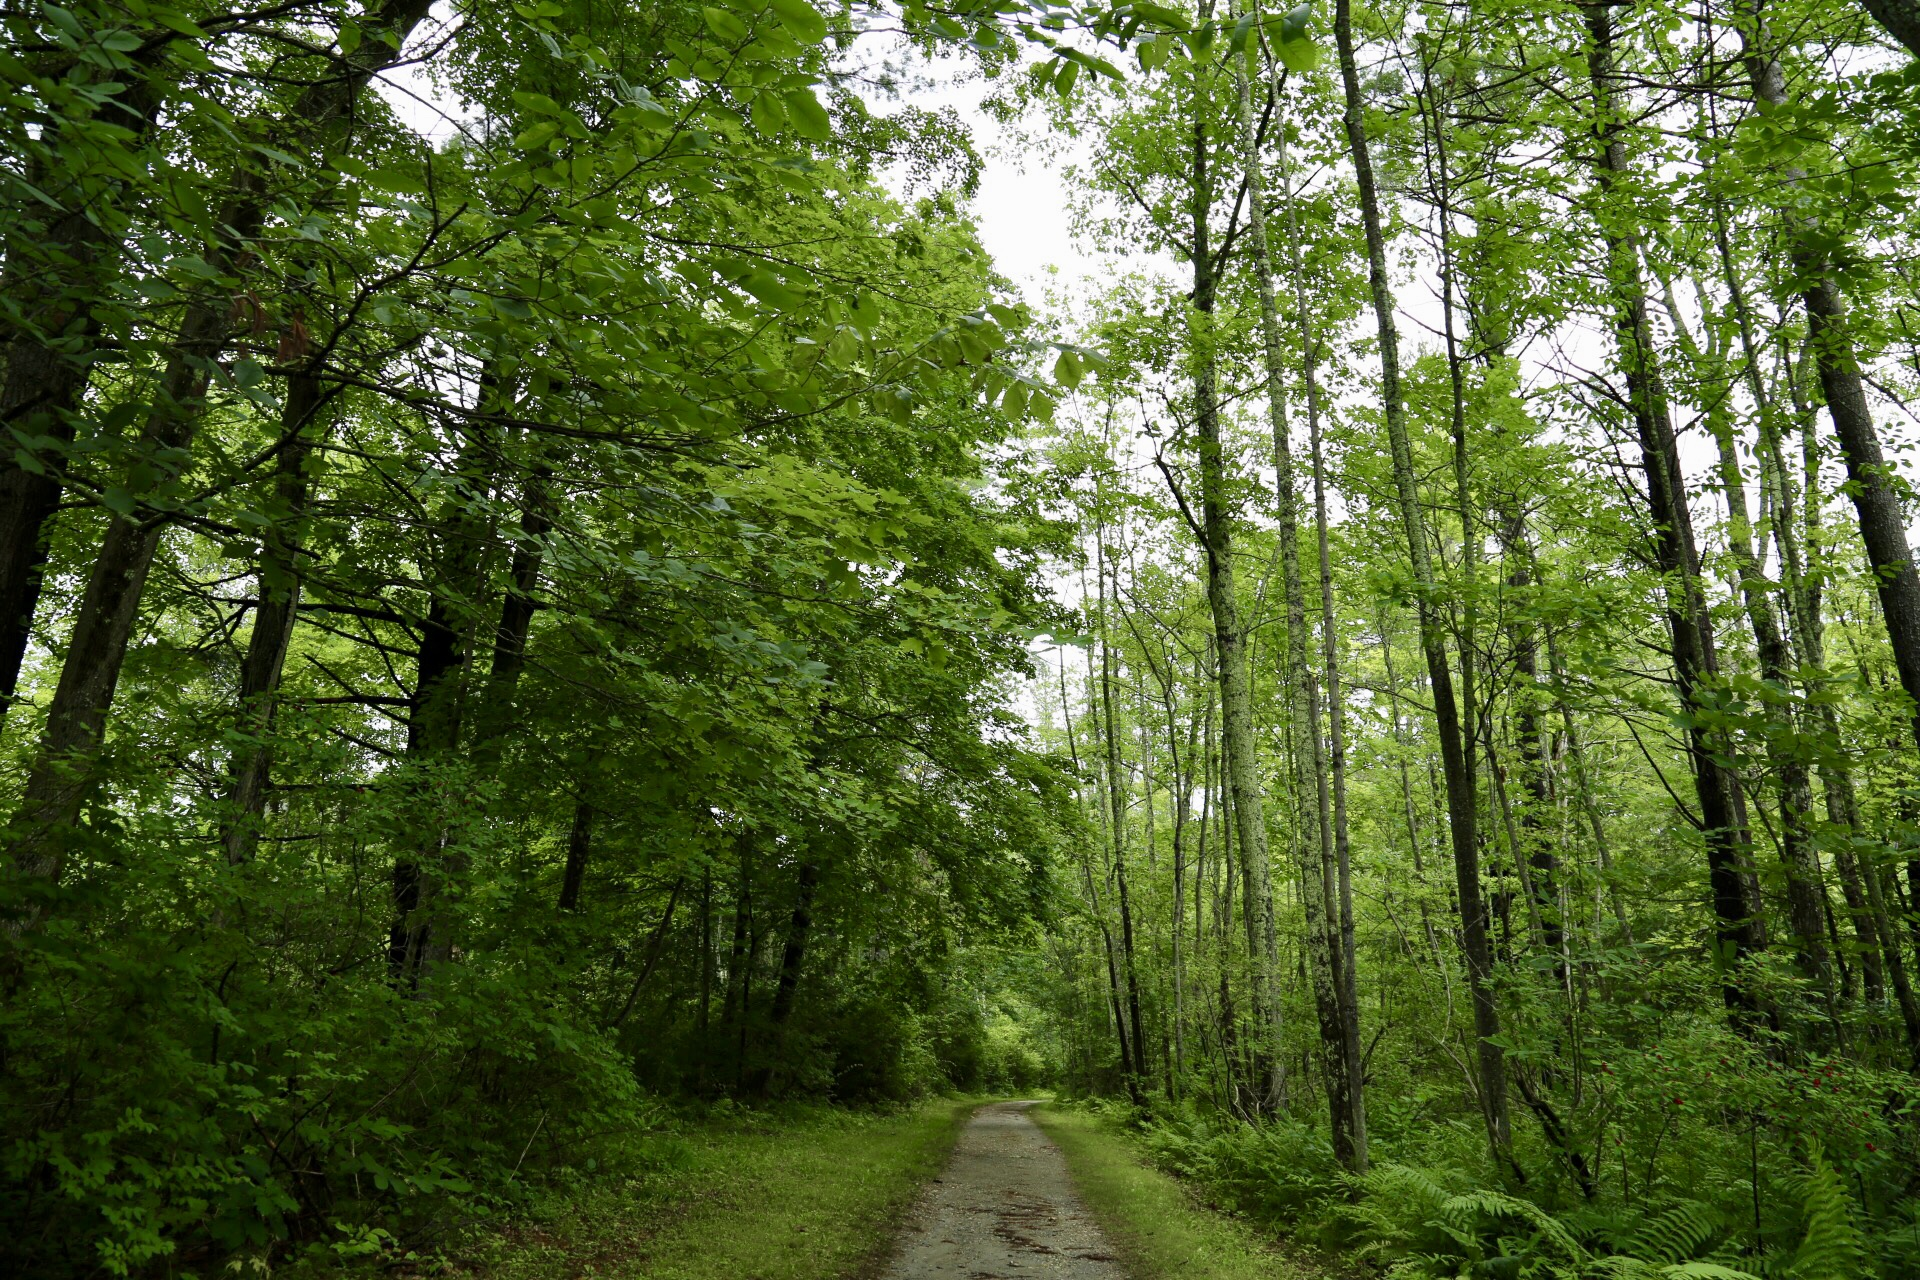 The path from the lake to Kripalu